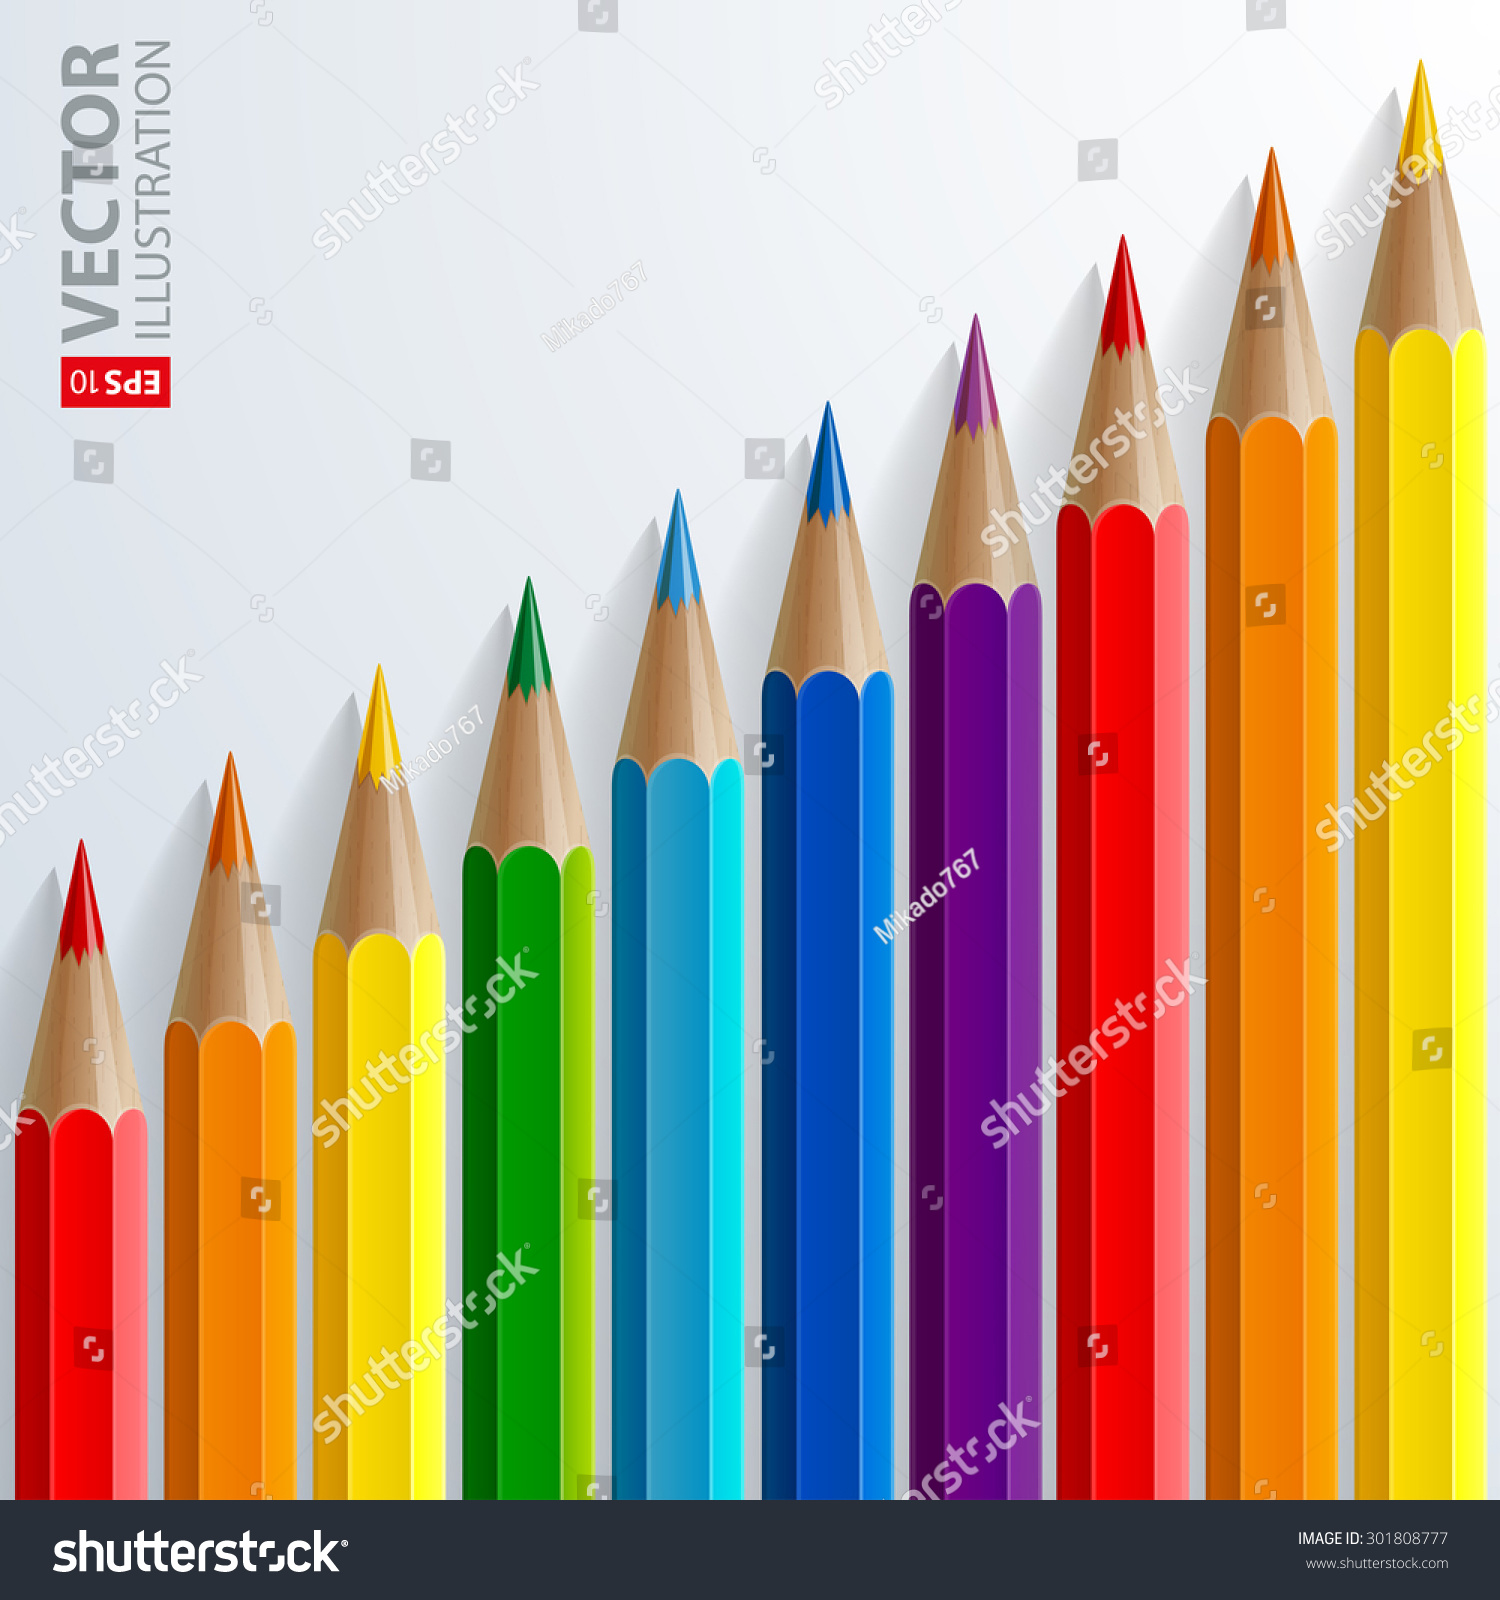 Color chart rainbow - Infographic Rainbow Color Pencils With Realistic Shadows Diagonal Growth Chart On White Background Rgb Eps